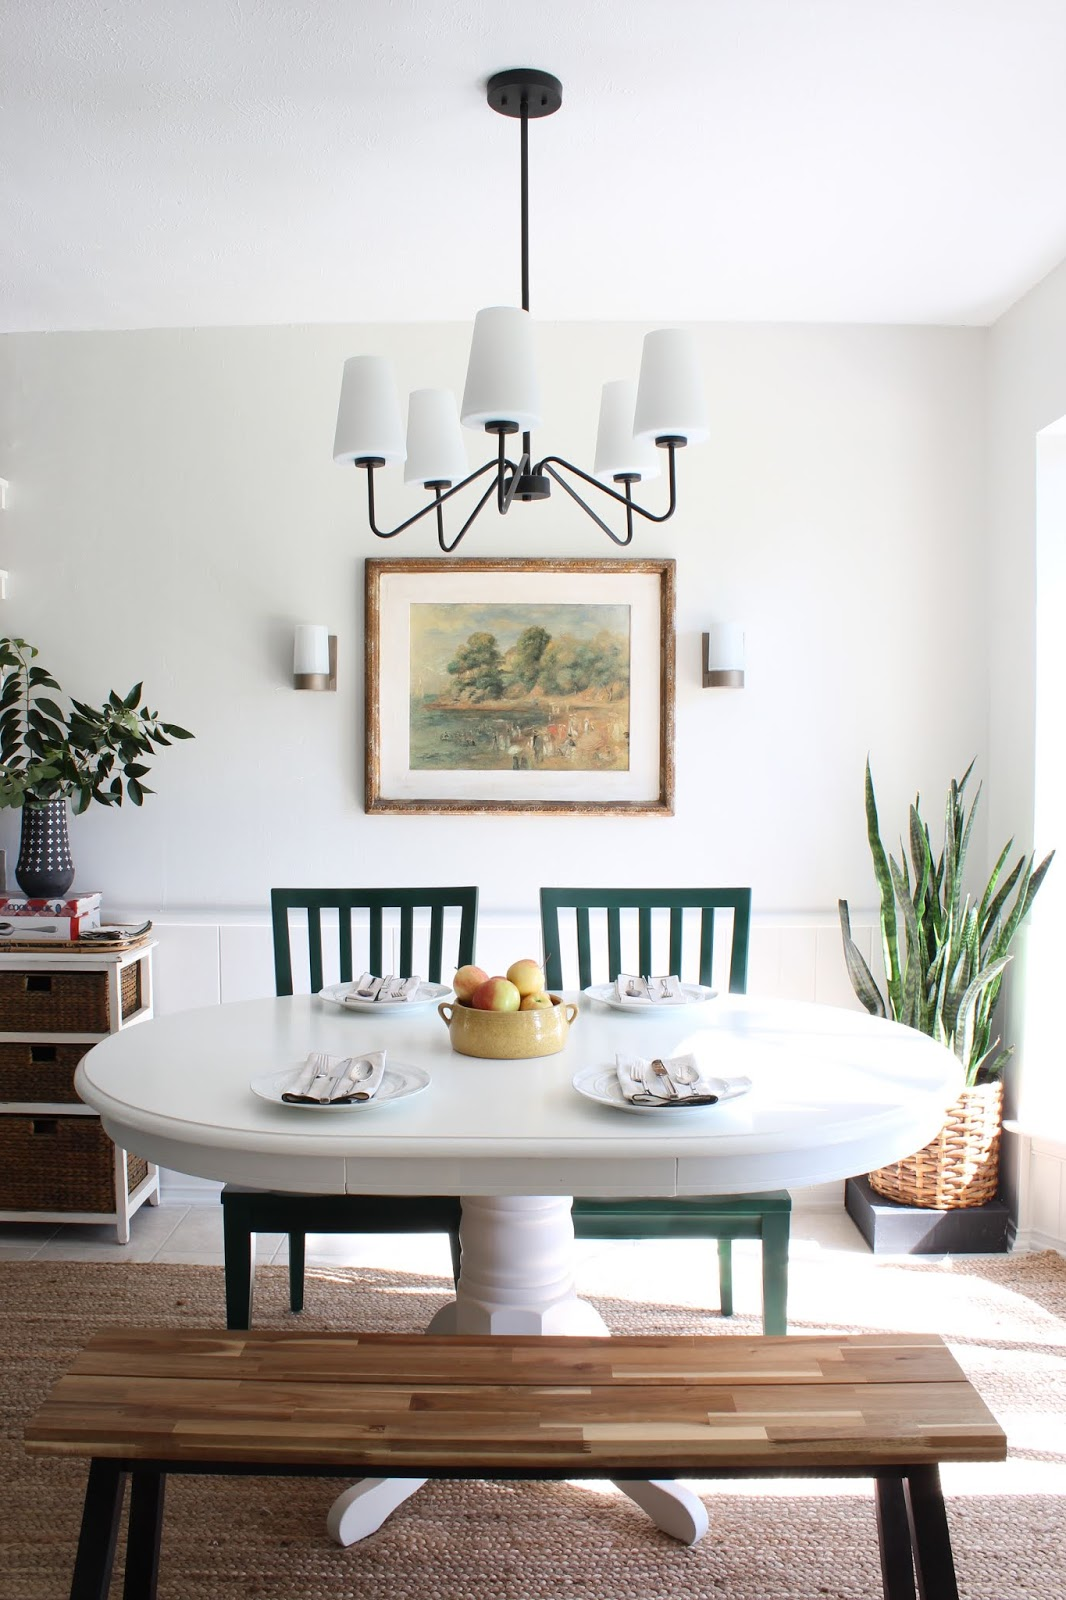 Something different late fall home tour forrest green krylon spray paint chairs| House Homemade